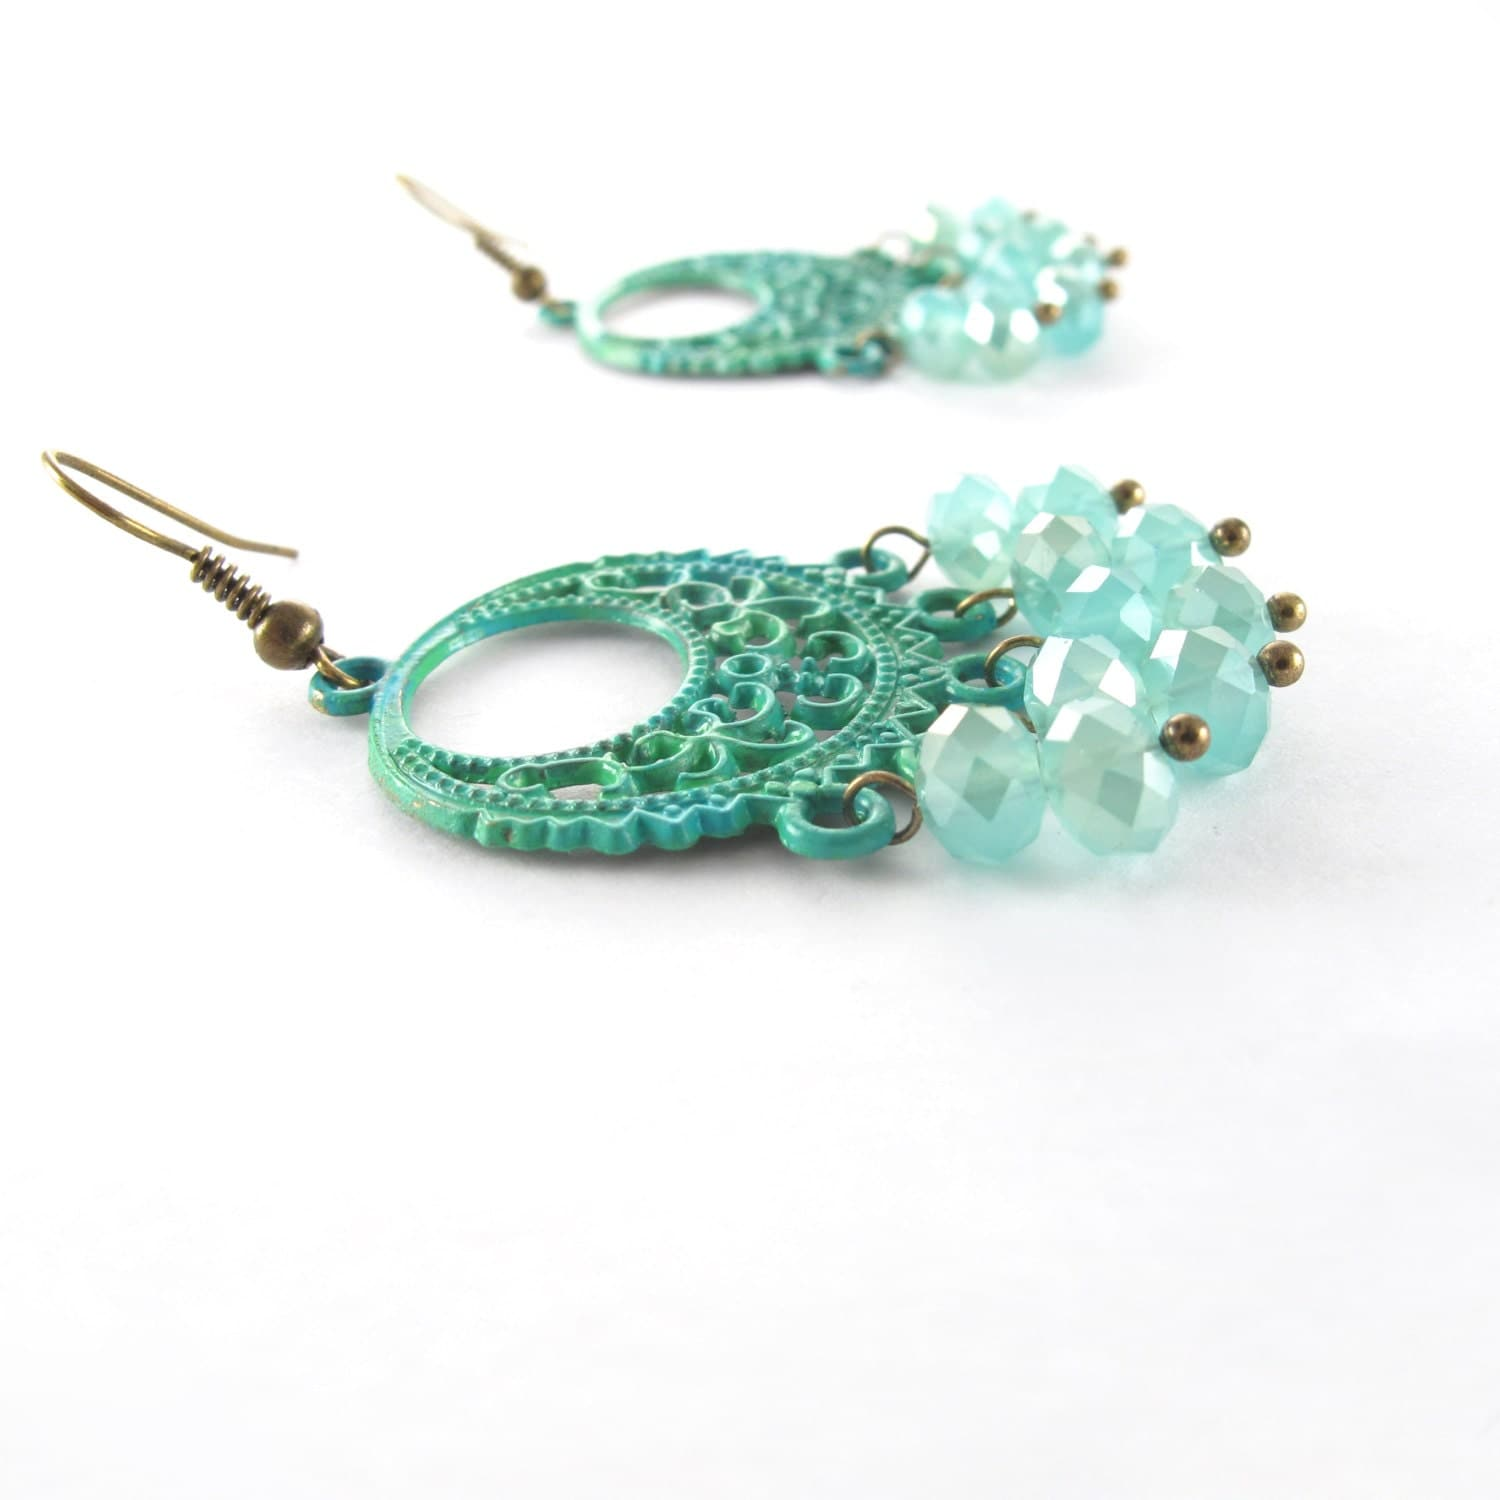 Green & Aqua Boho Chandelier Earrings, Hand Painted - MoonlightShimmer